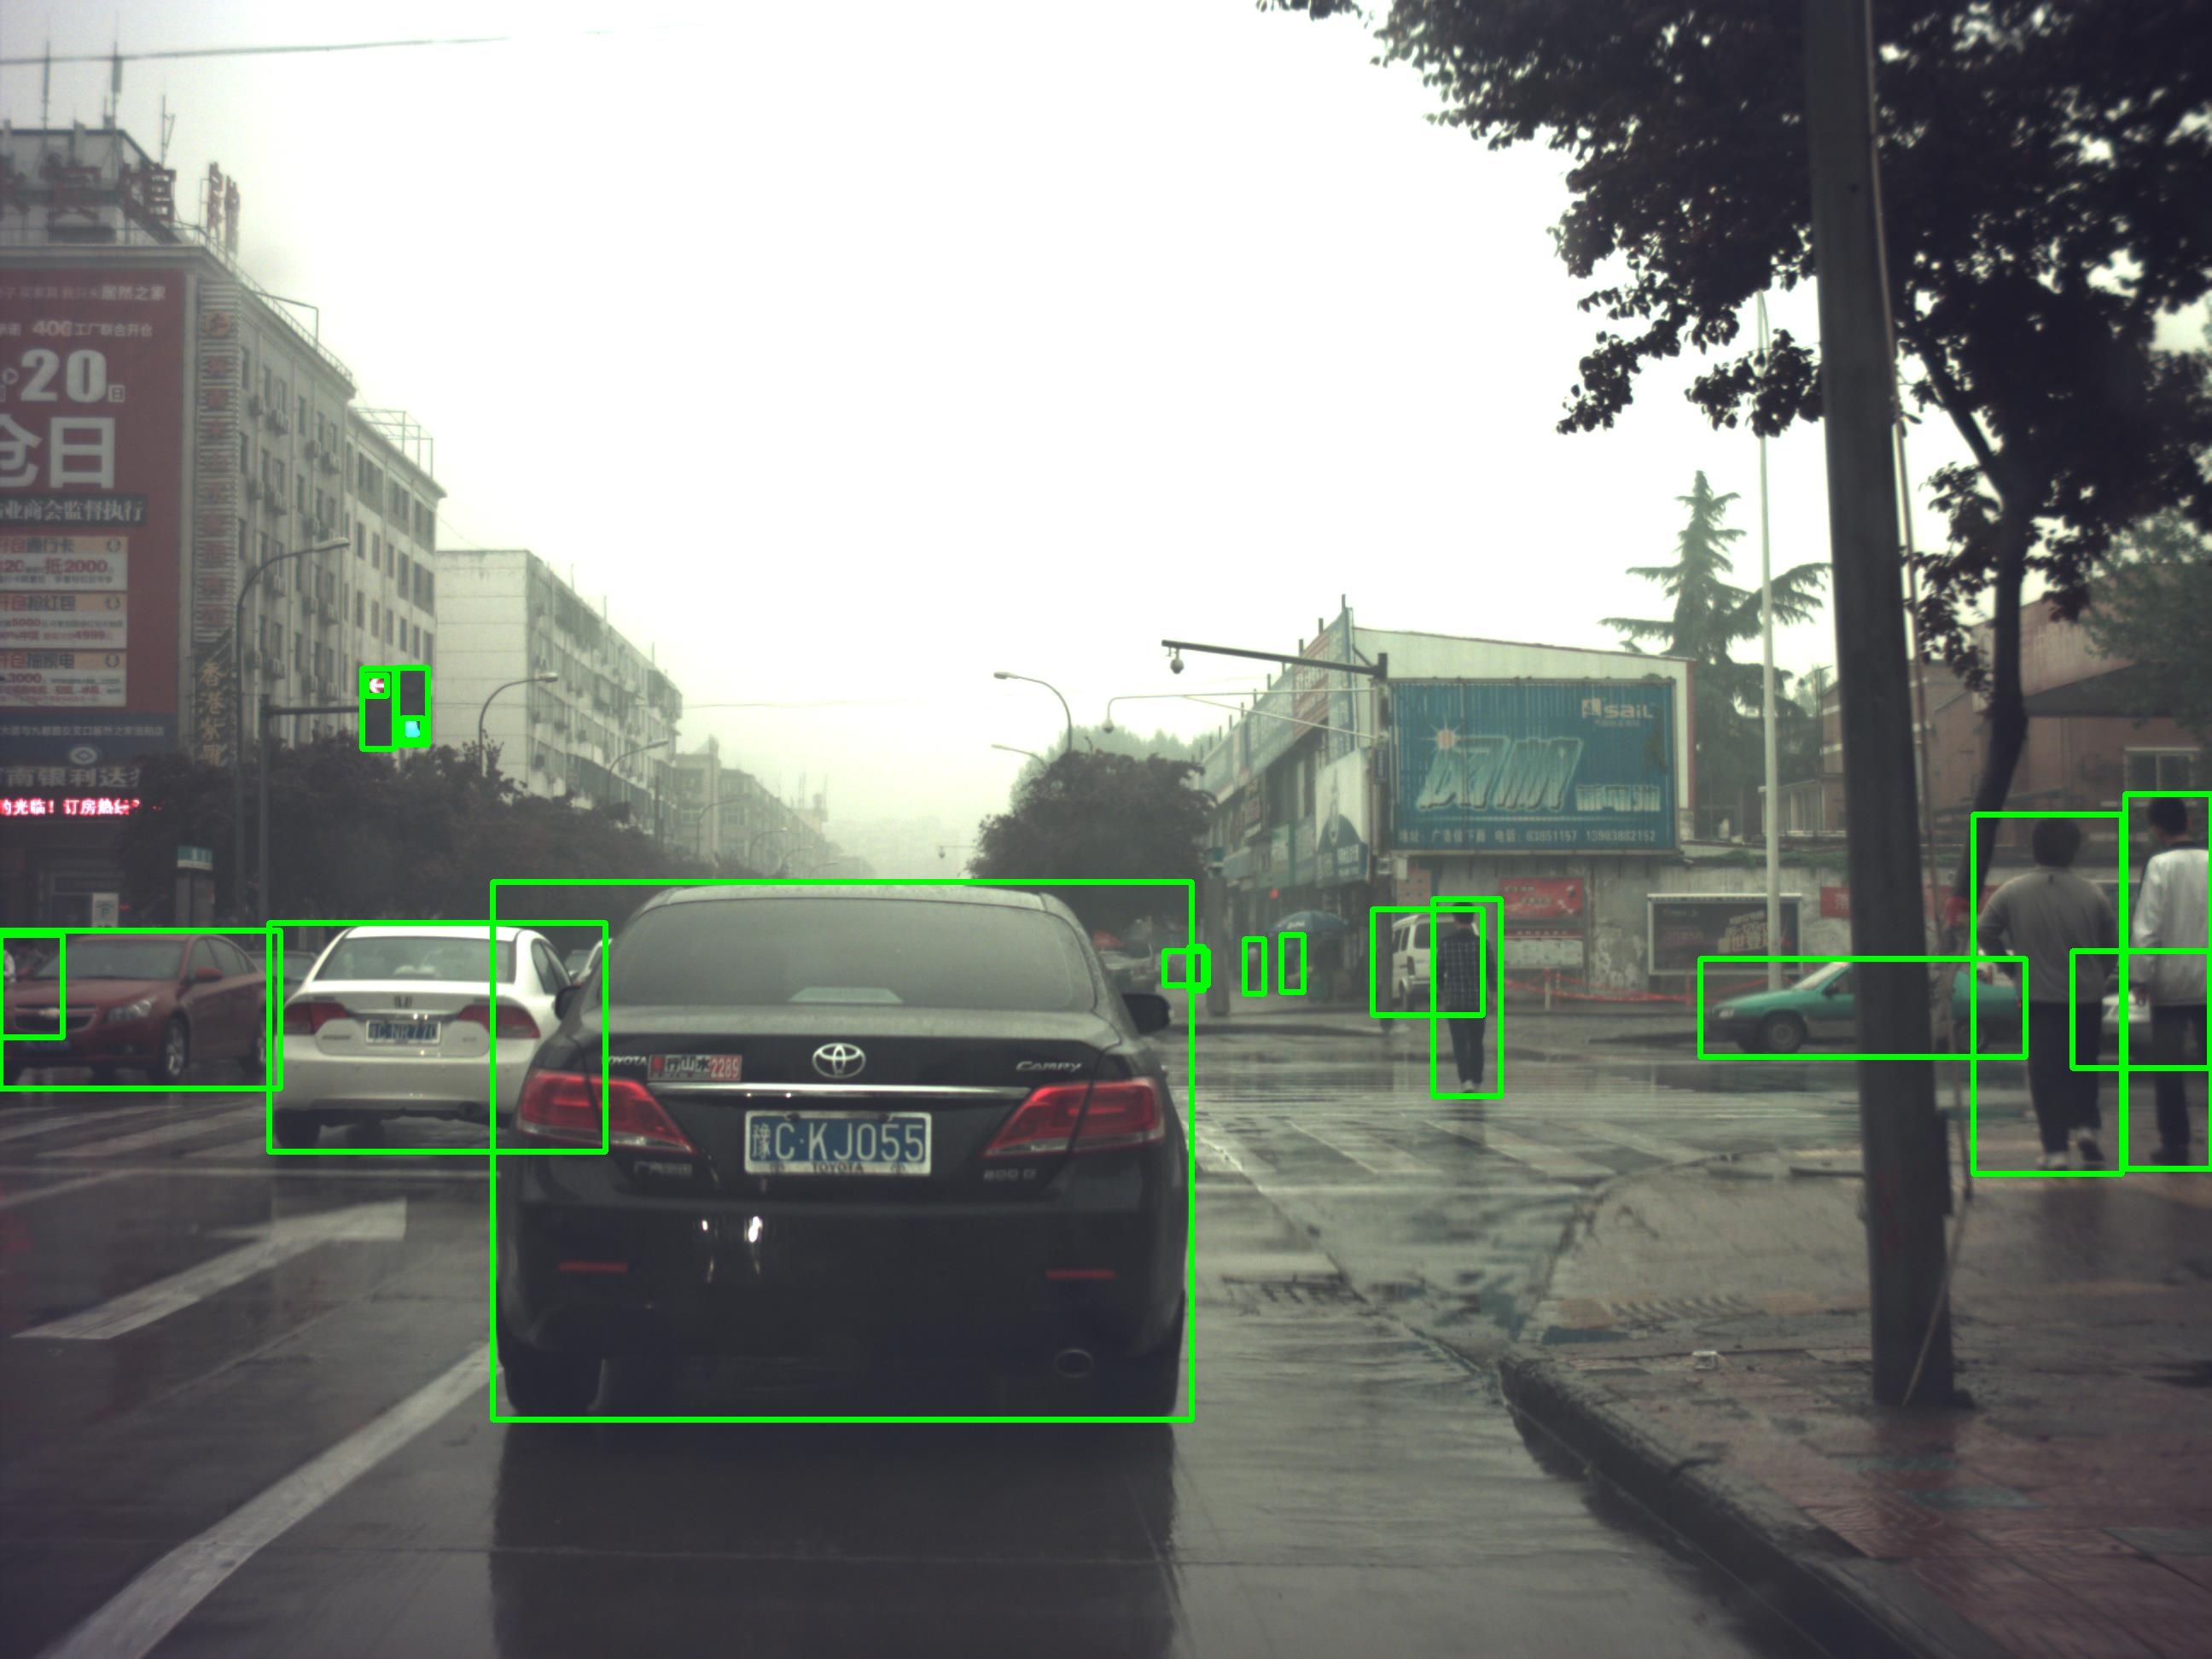 531,669 Images - 5,735,505 Bounding Boxes Object Detection Data in Street View Scenes_Autonomous Driving Data Solution_Datatang